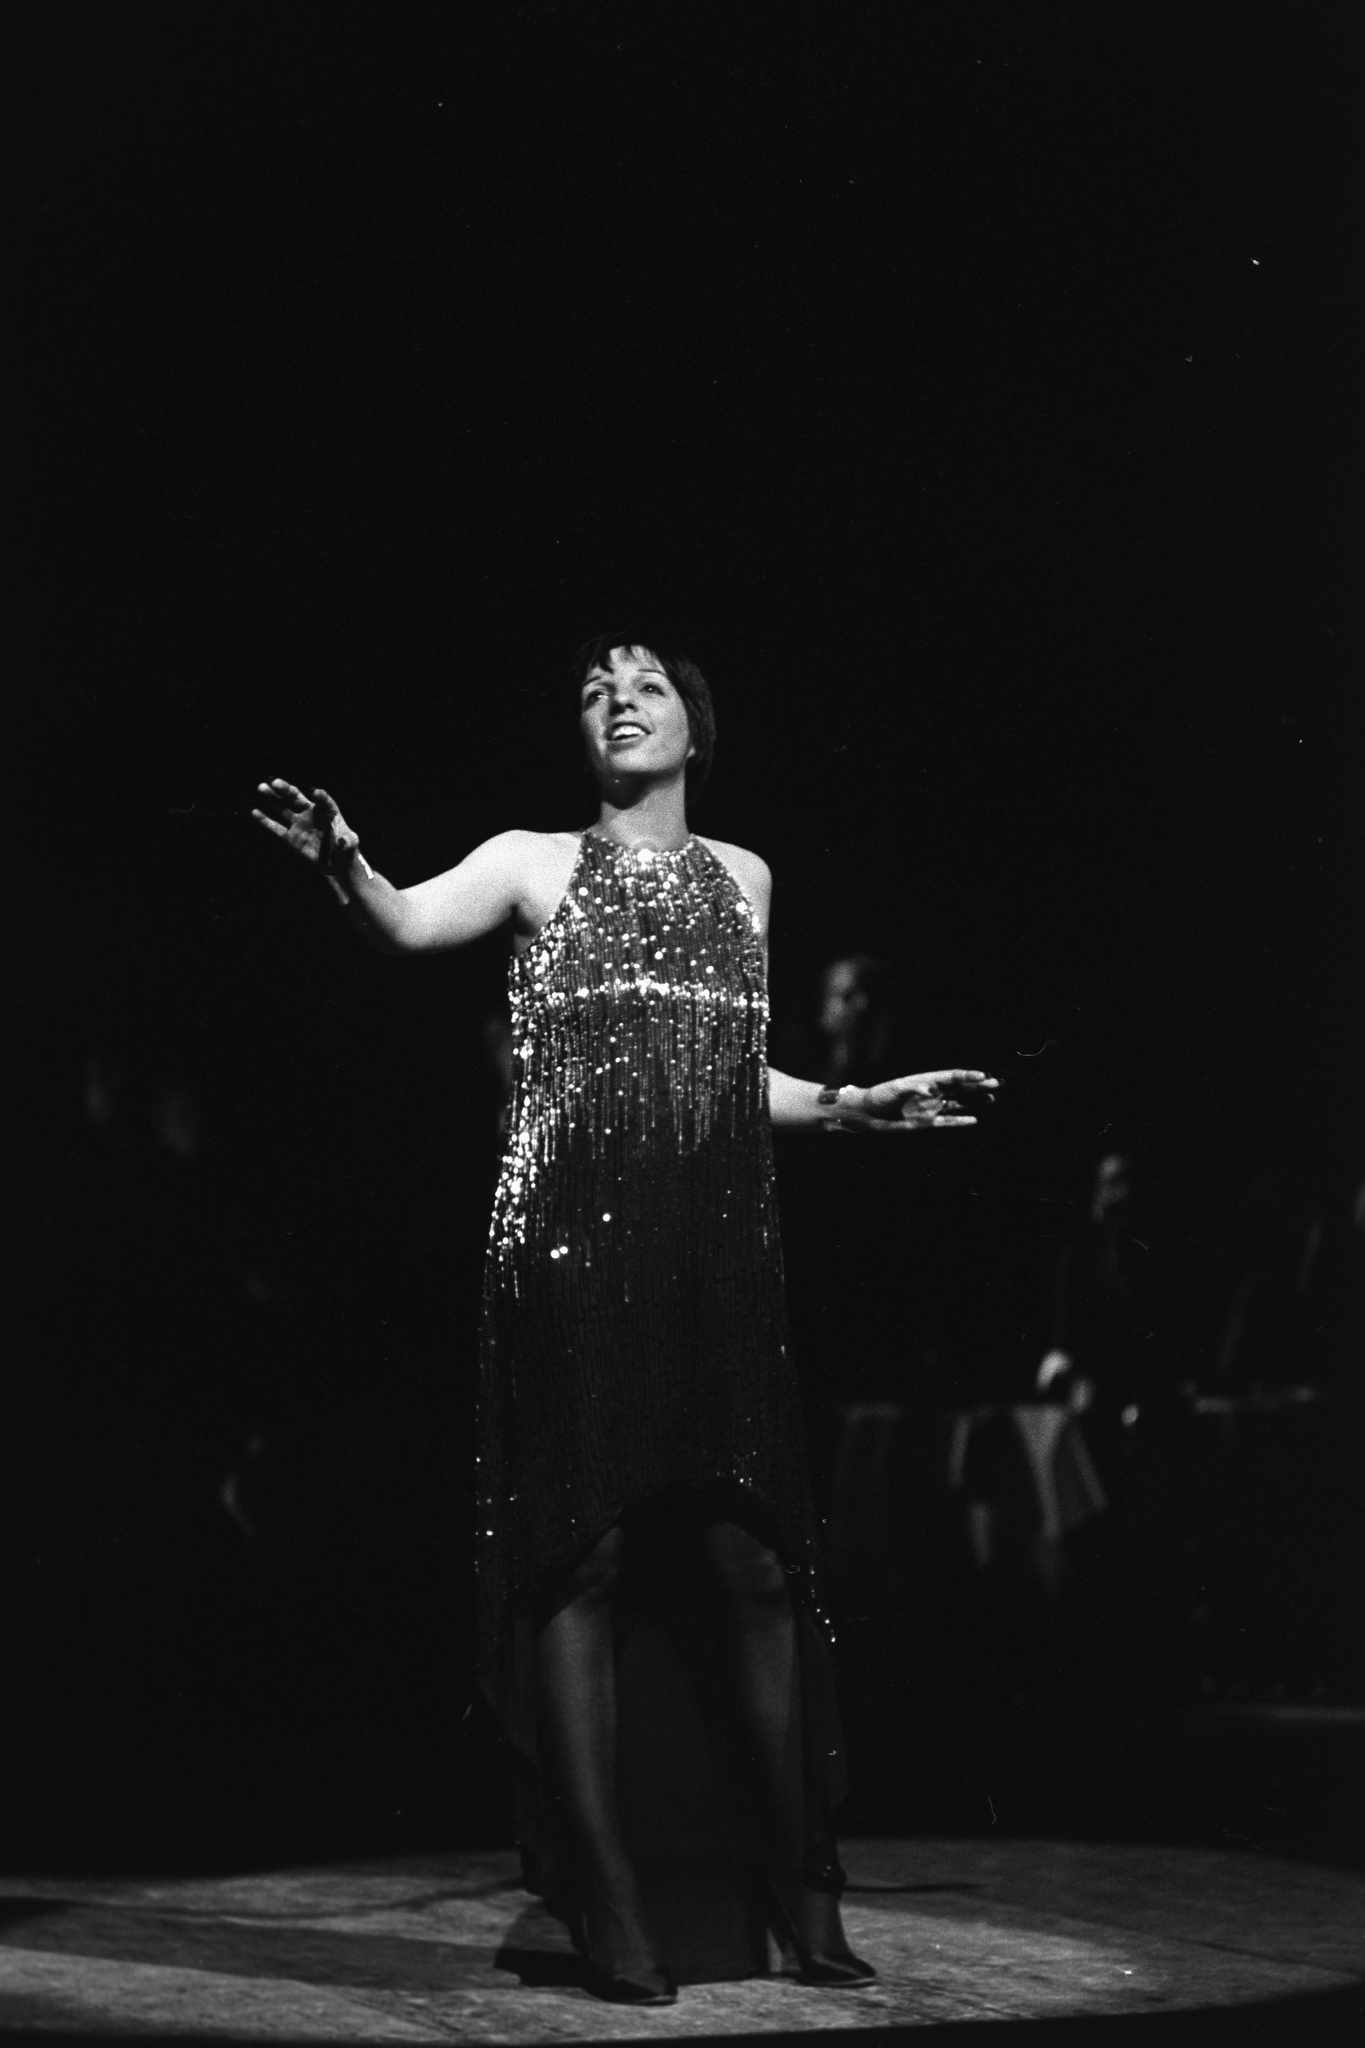 Liza Minnelli performs during the fashion show to benefit the restoration of the Chateau of Versailles, five American designers matching talents with five French couturiers at the Versailles Palace on November 28, 1973 in Versailles, France...Article title: 'One night and pouf! It's gone!Battle of Versailles, Versailles